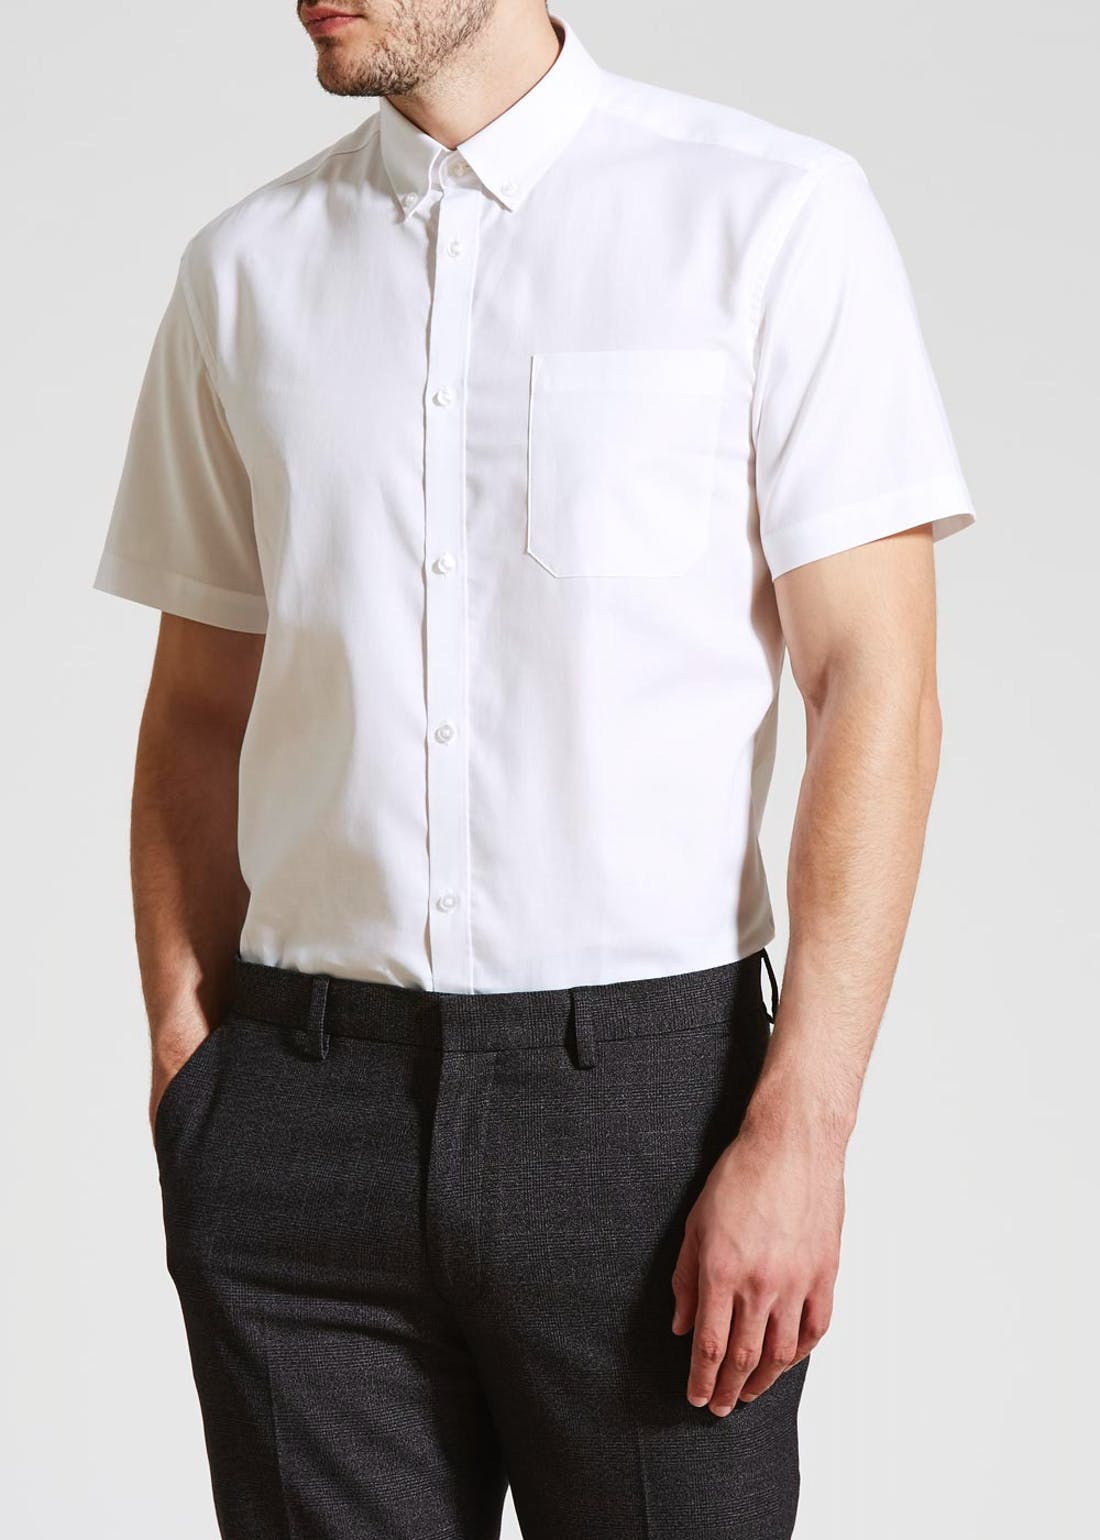 Taylor & Wright Easy Iron Short Sleeve Oxford Shirt